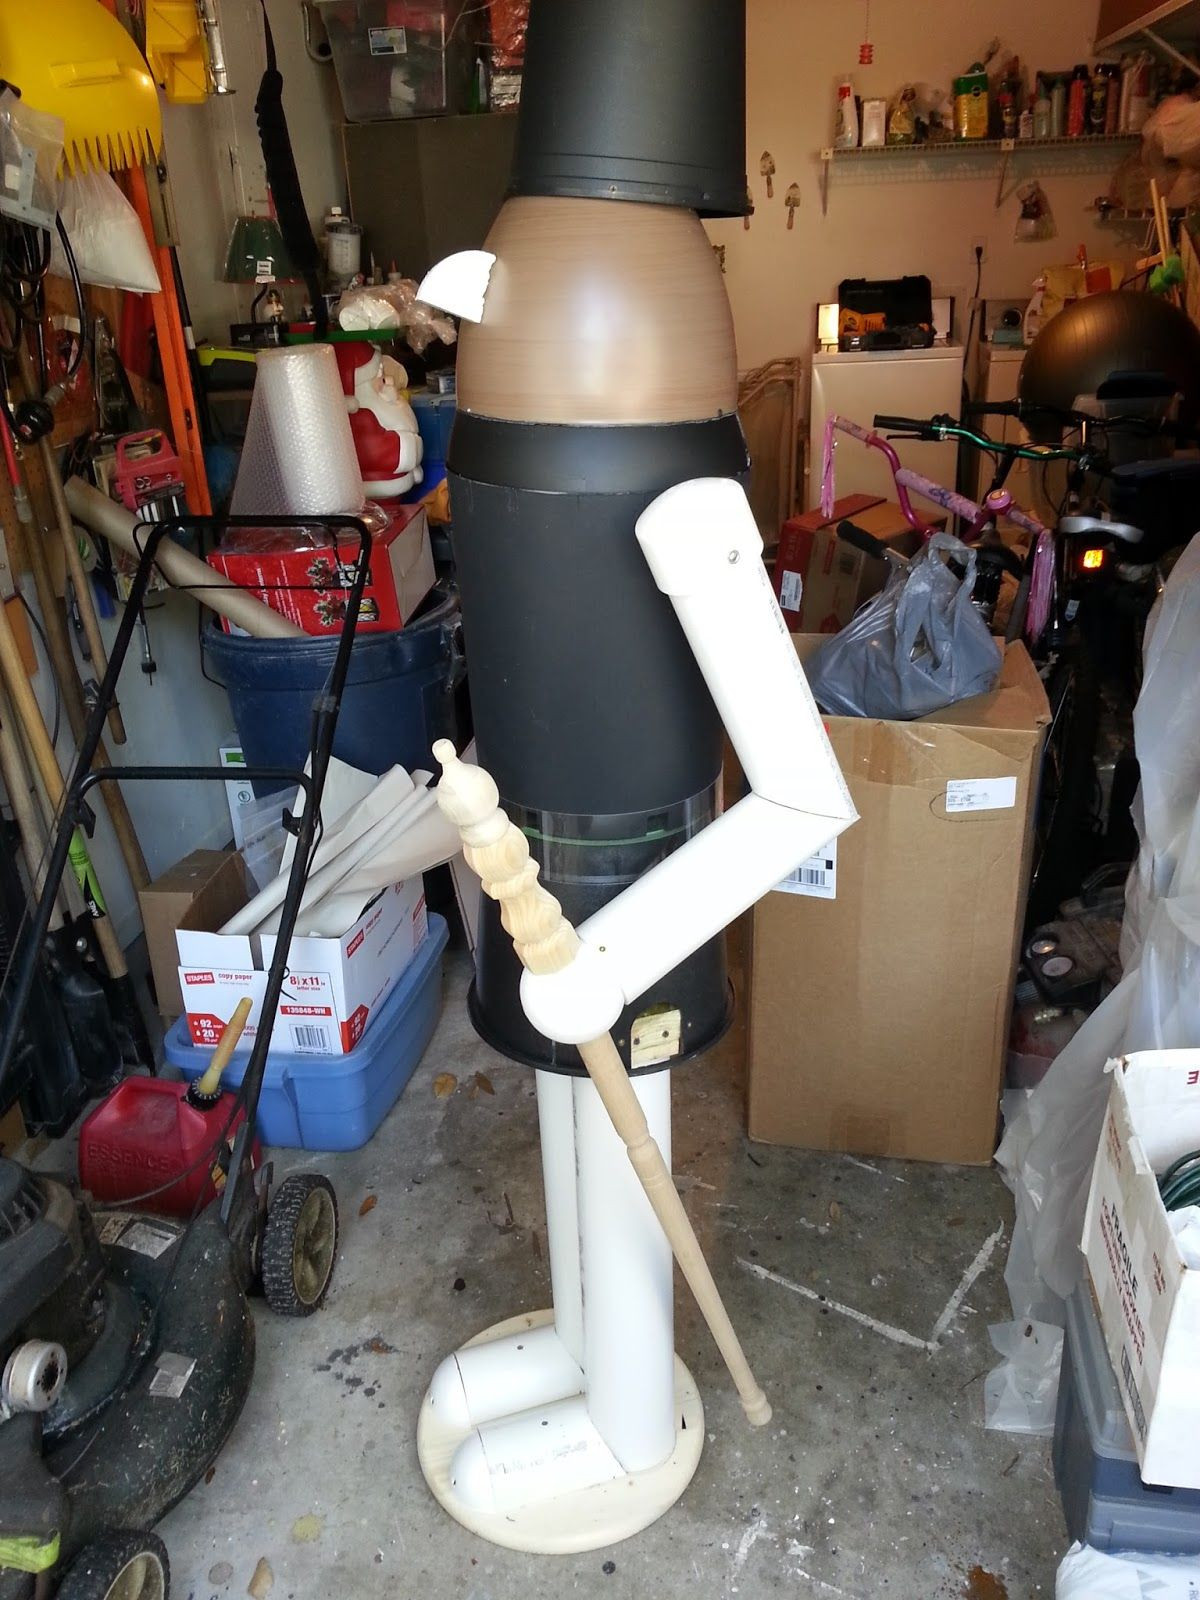 Best ideas about Life Size Nutcracker DIY . Save or Pin DIY Lifesize Nutcracker on a bud Pots Planters and Now.